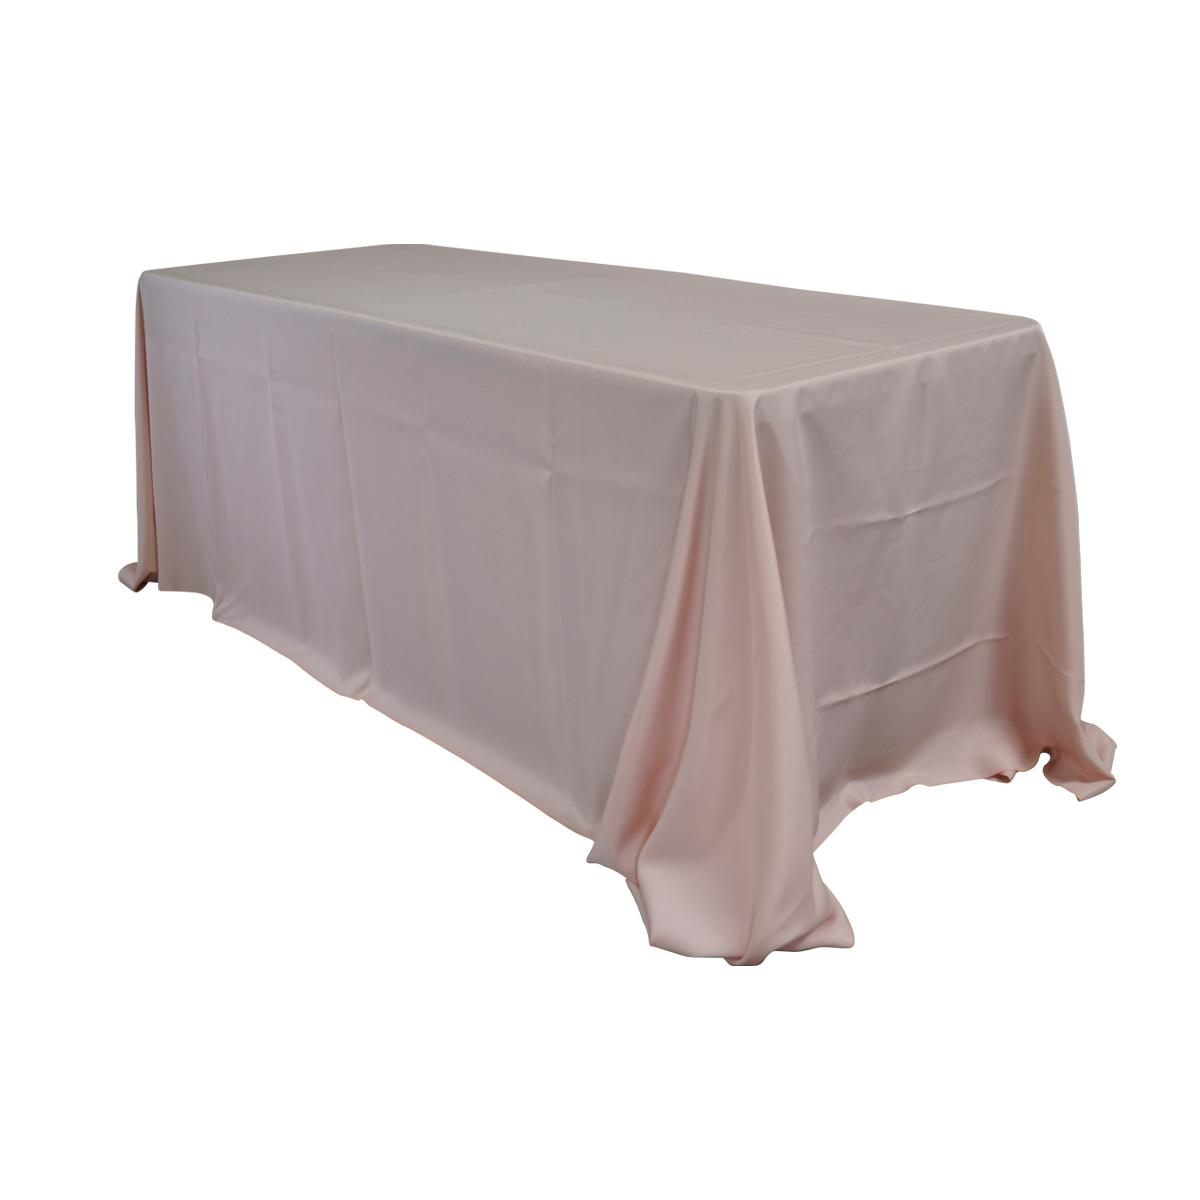 Economy Polyester Poplin Rectangular Tablecloths - Blush